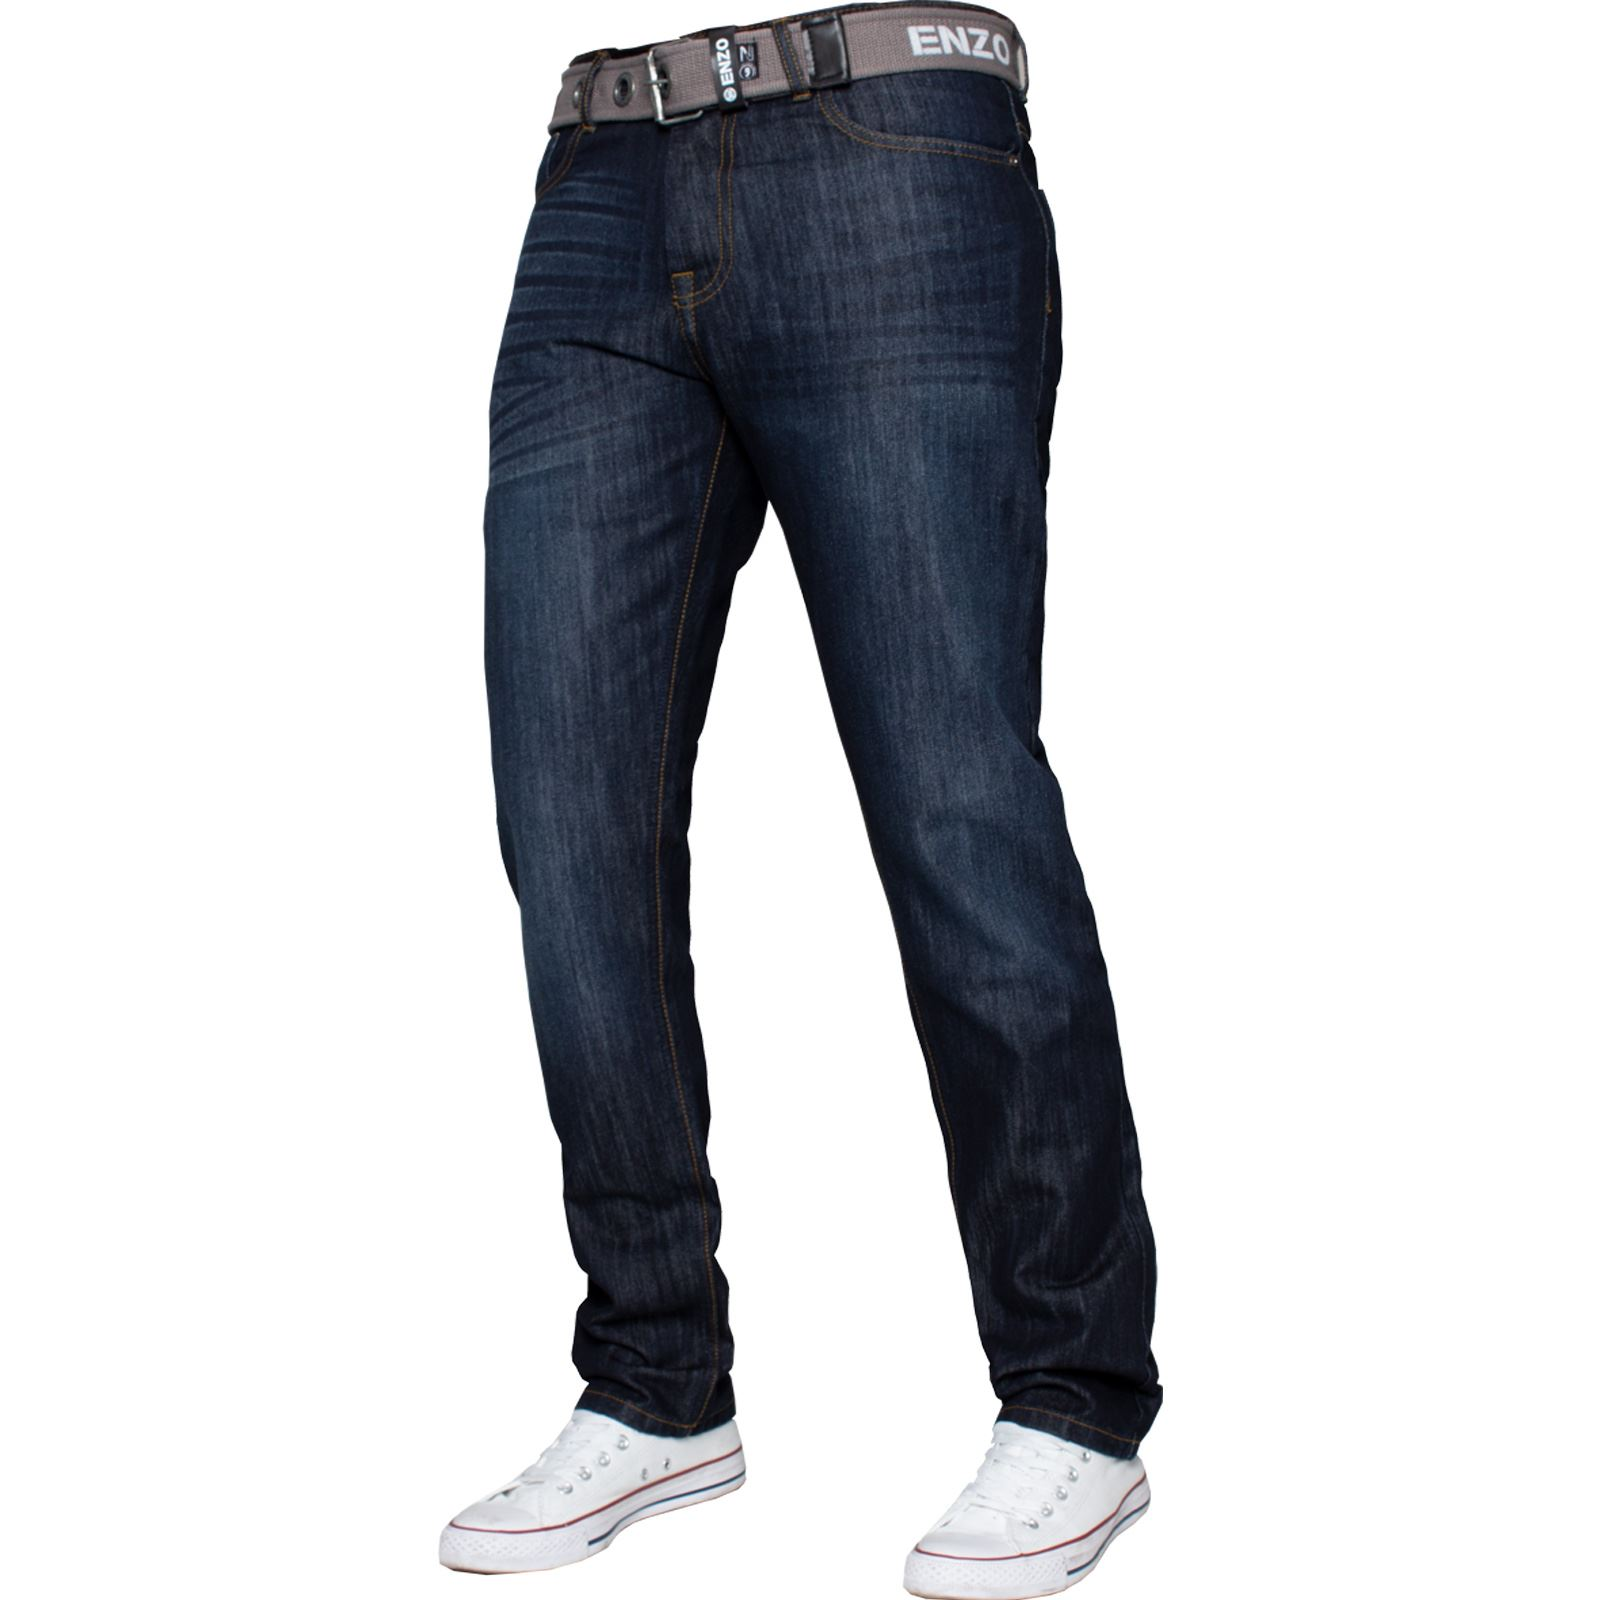 Enzo-Mens-Designer-Jeans-Regular-Fit-Denim-Pants-Big-Tall-All-Waist-Sizes thumbnail 12